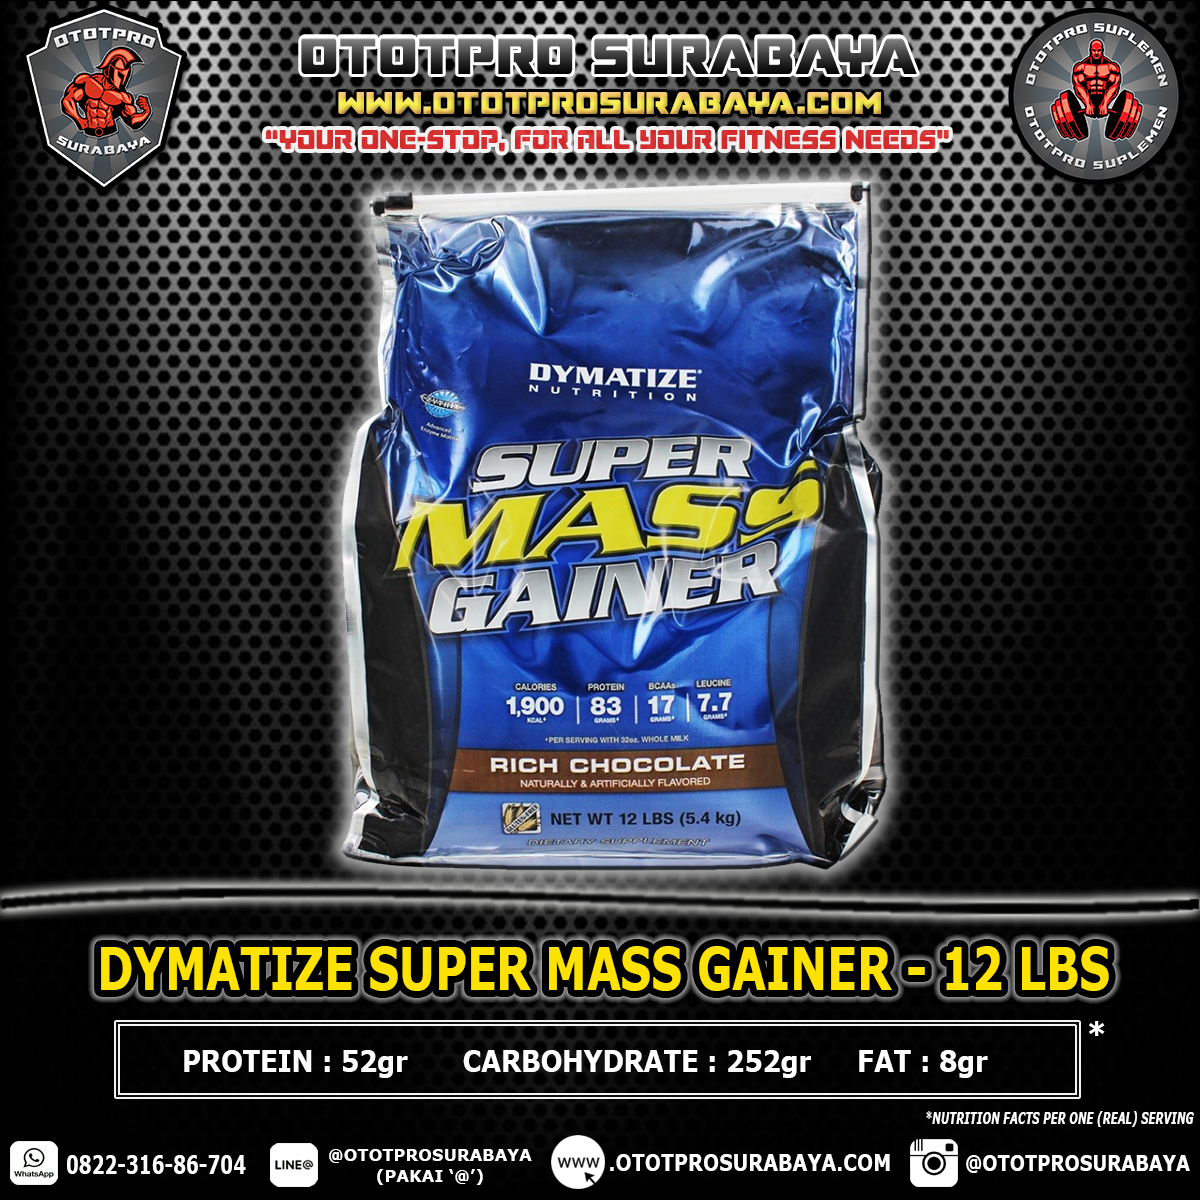 Suplemen Fitness Full Pack Penuh Mass Gainer Dymatize Super Supermass 12lbsb 12lbs